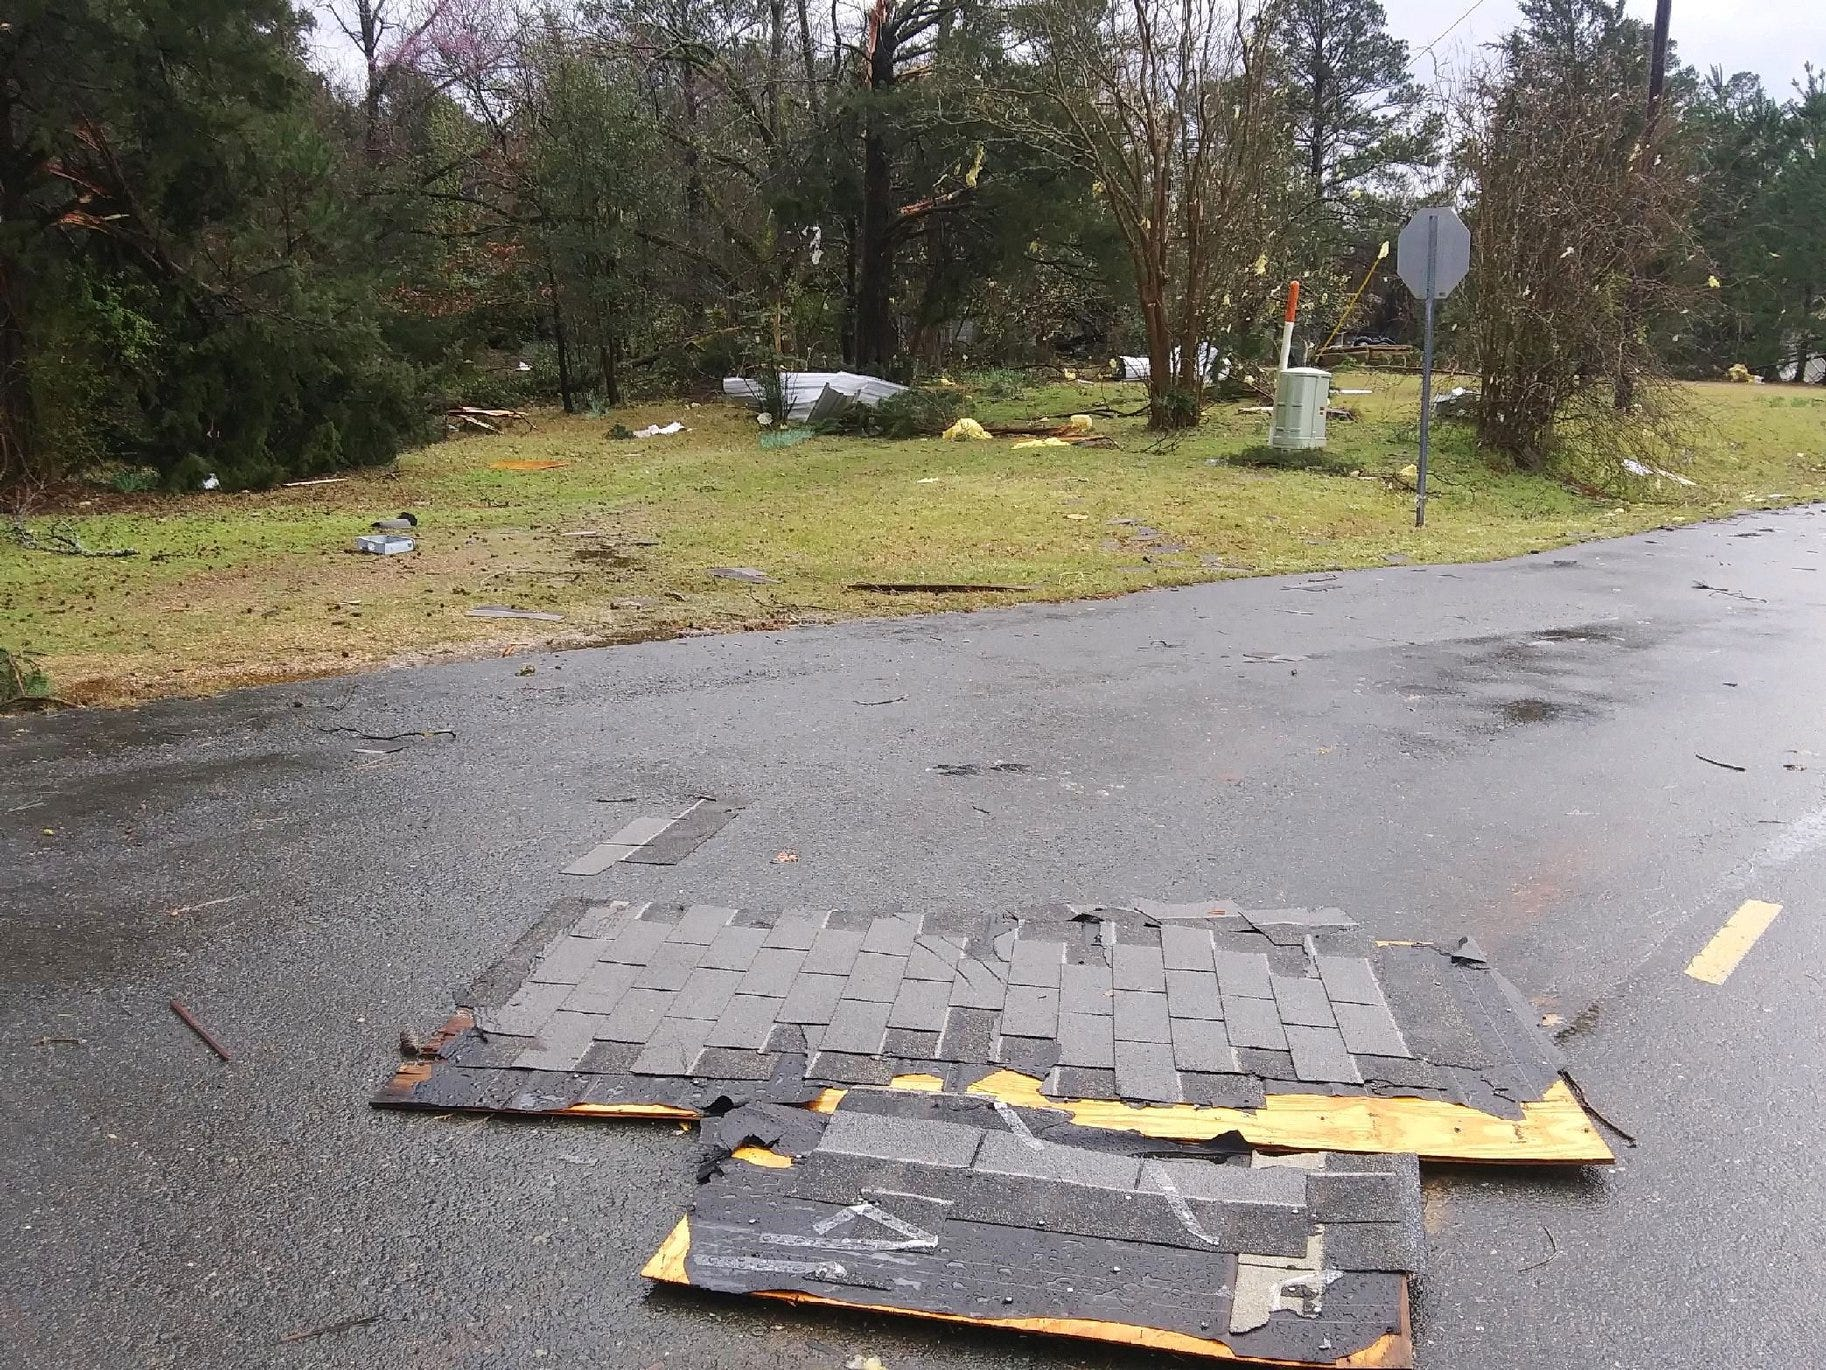 Tornado damage along Highway 157 and Red Land Road in Bossier Parish. Three category EF1 tornadoes were reported to touchdown in Bossier, Caddo and Webster parishes on March 9, 2019.